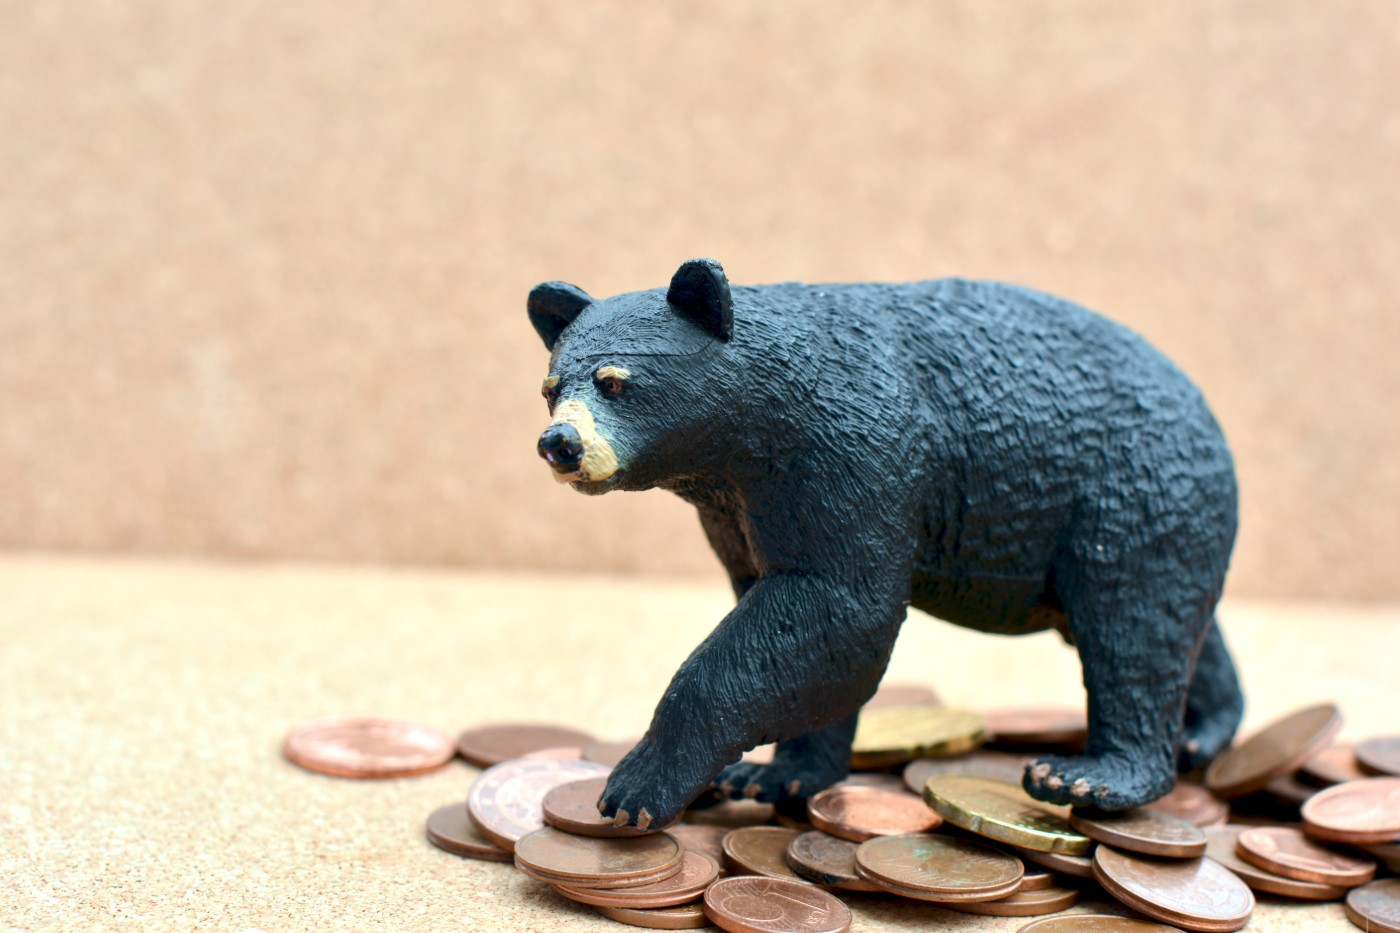 https://tickertapecdn.tdameritrade.com/assets/images/pages/md/Investing in a bear market